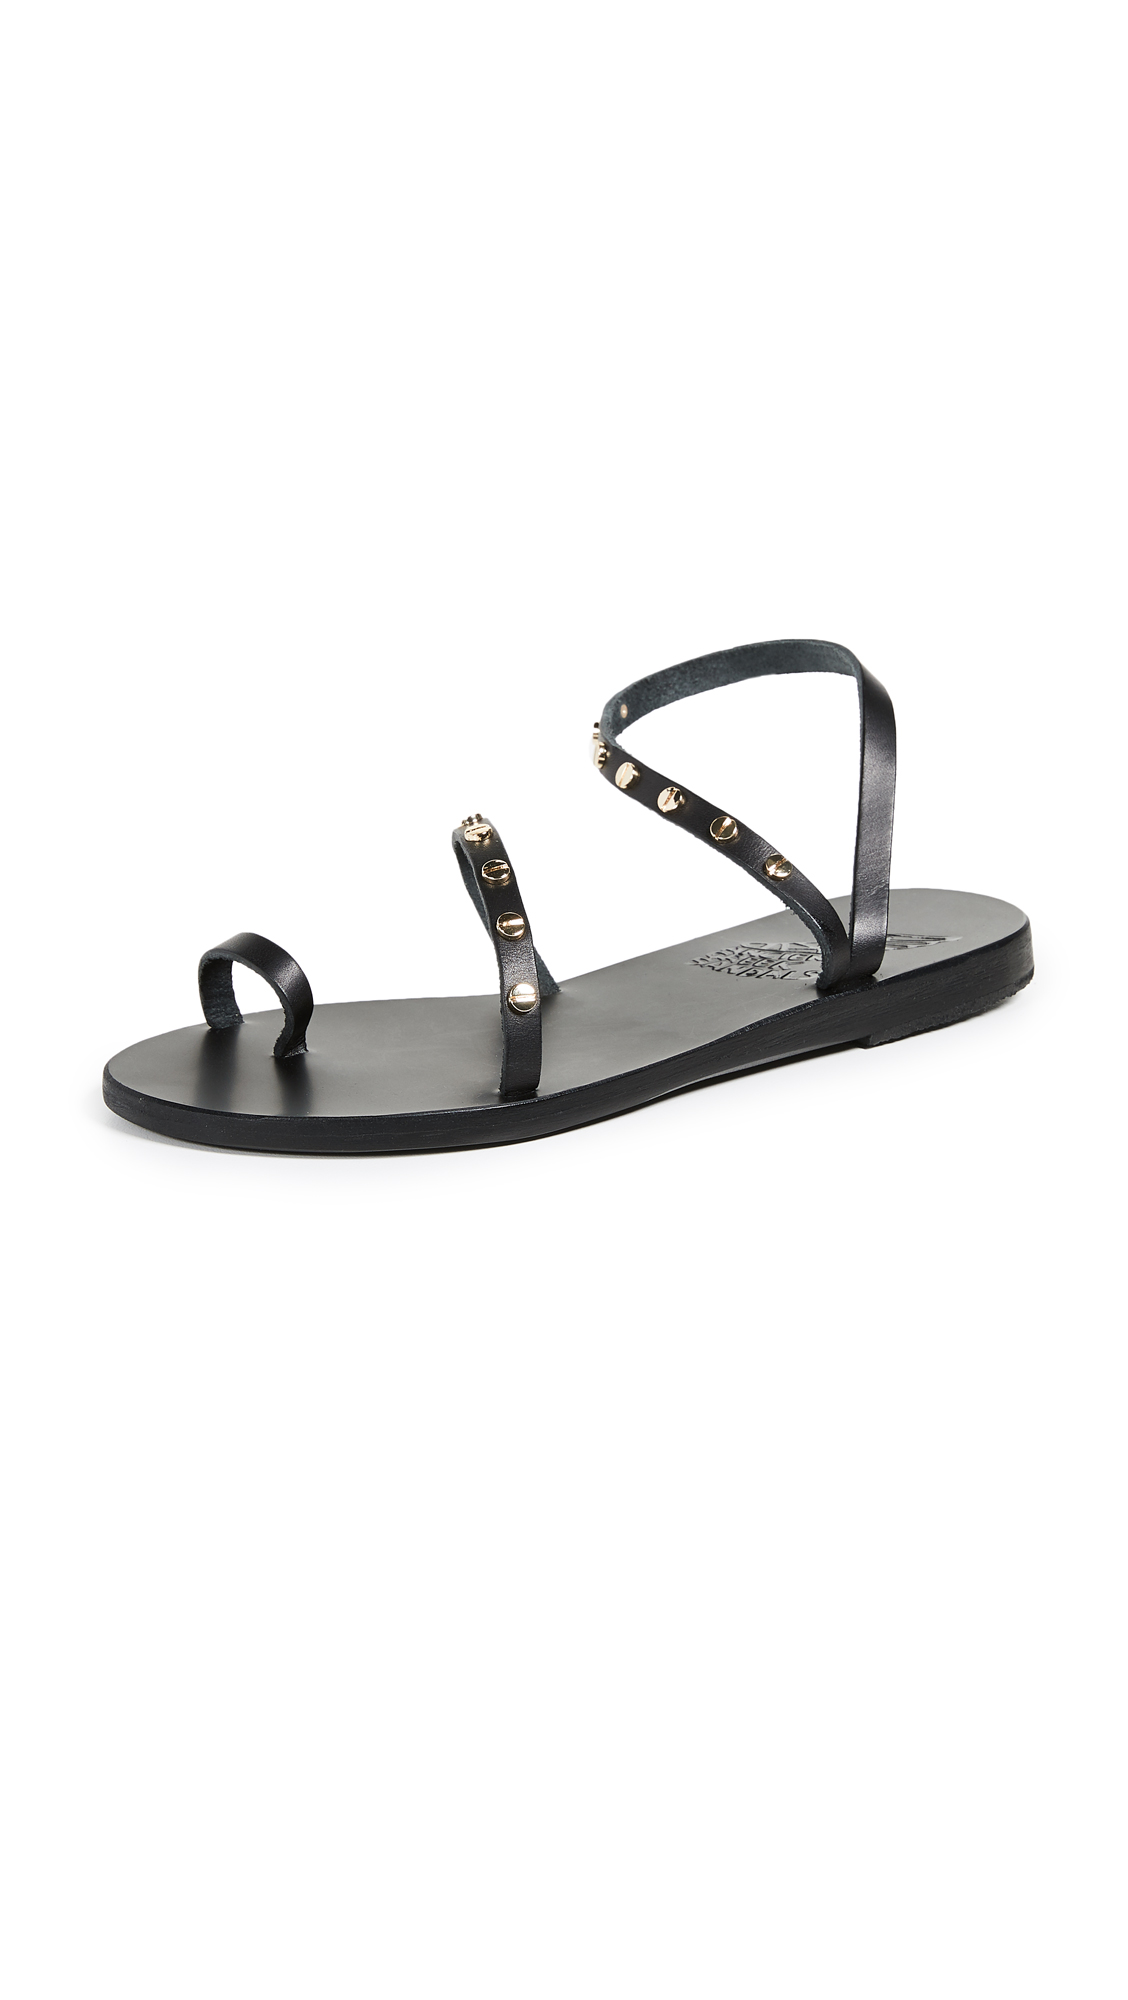 Ancient Greek Sandals Apli Eleftheria Slide Sandals - Black